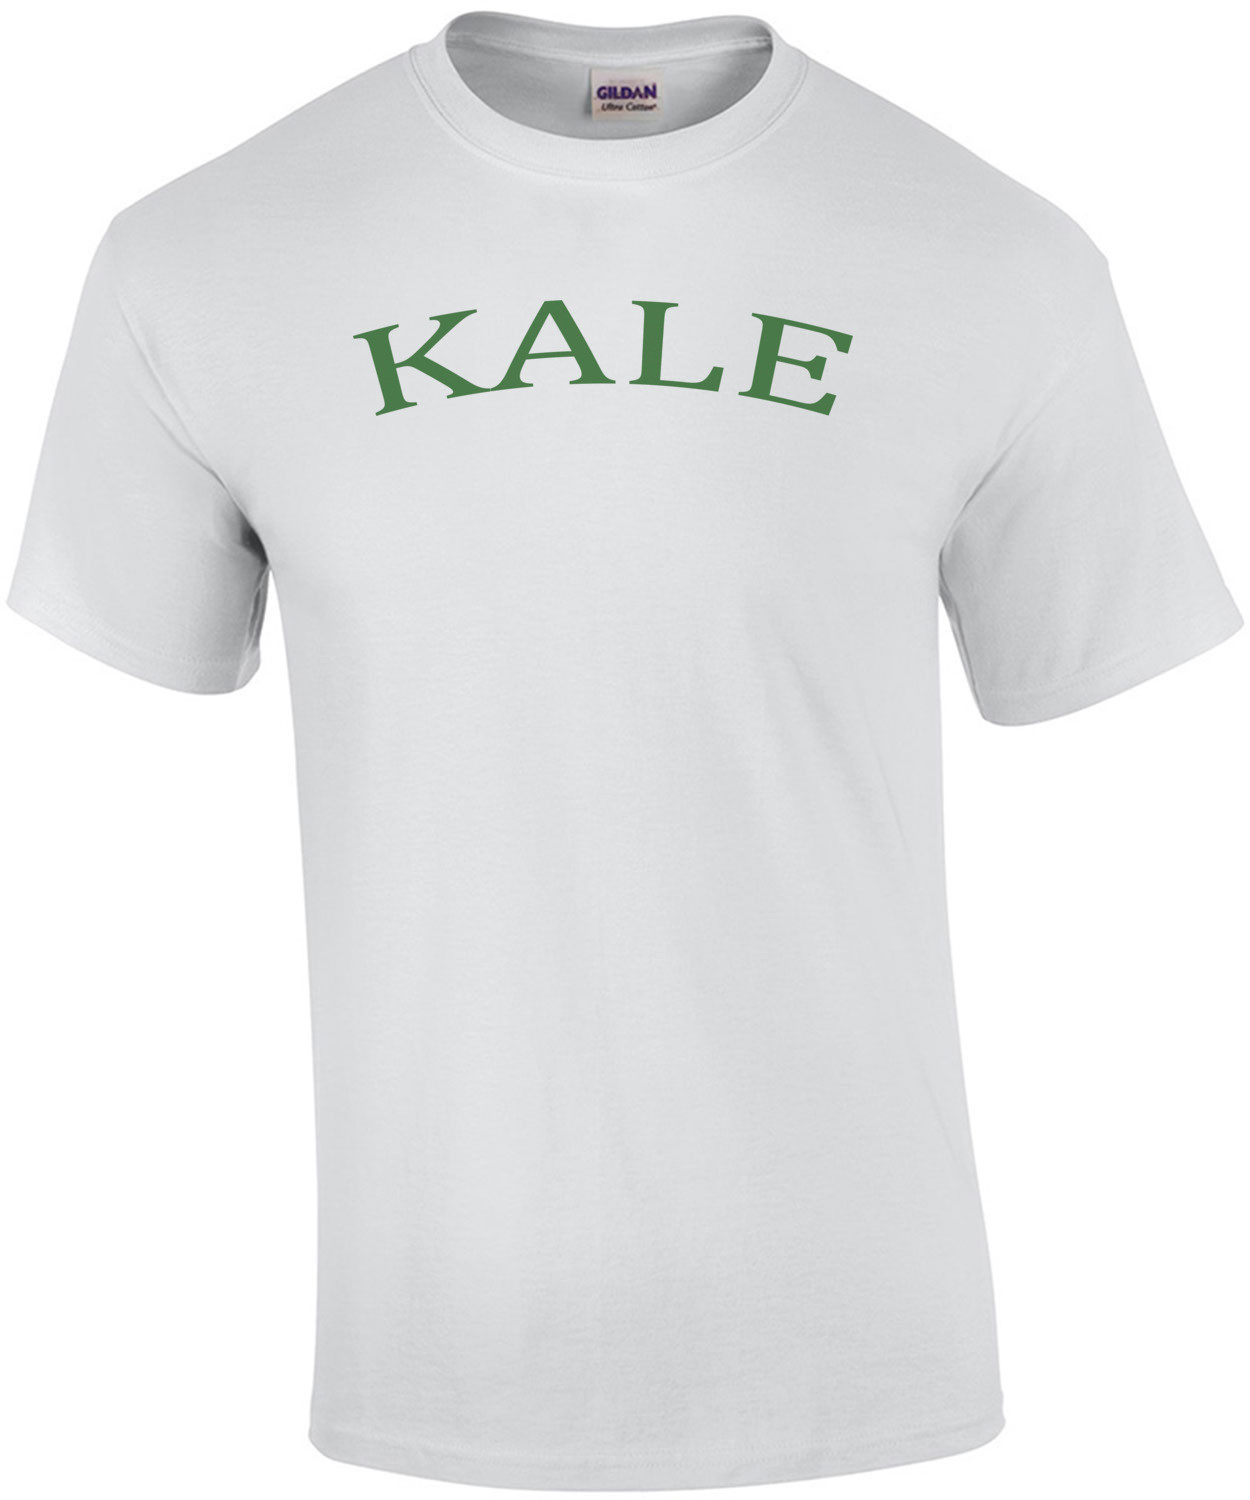 KALE University - Yale Vegetarian T-Shirt shirt